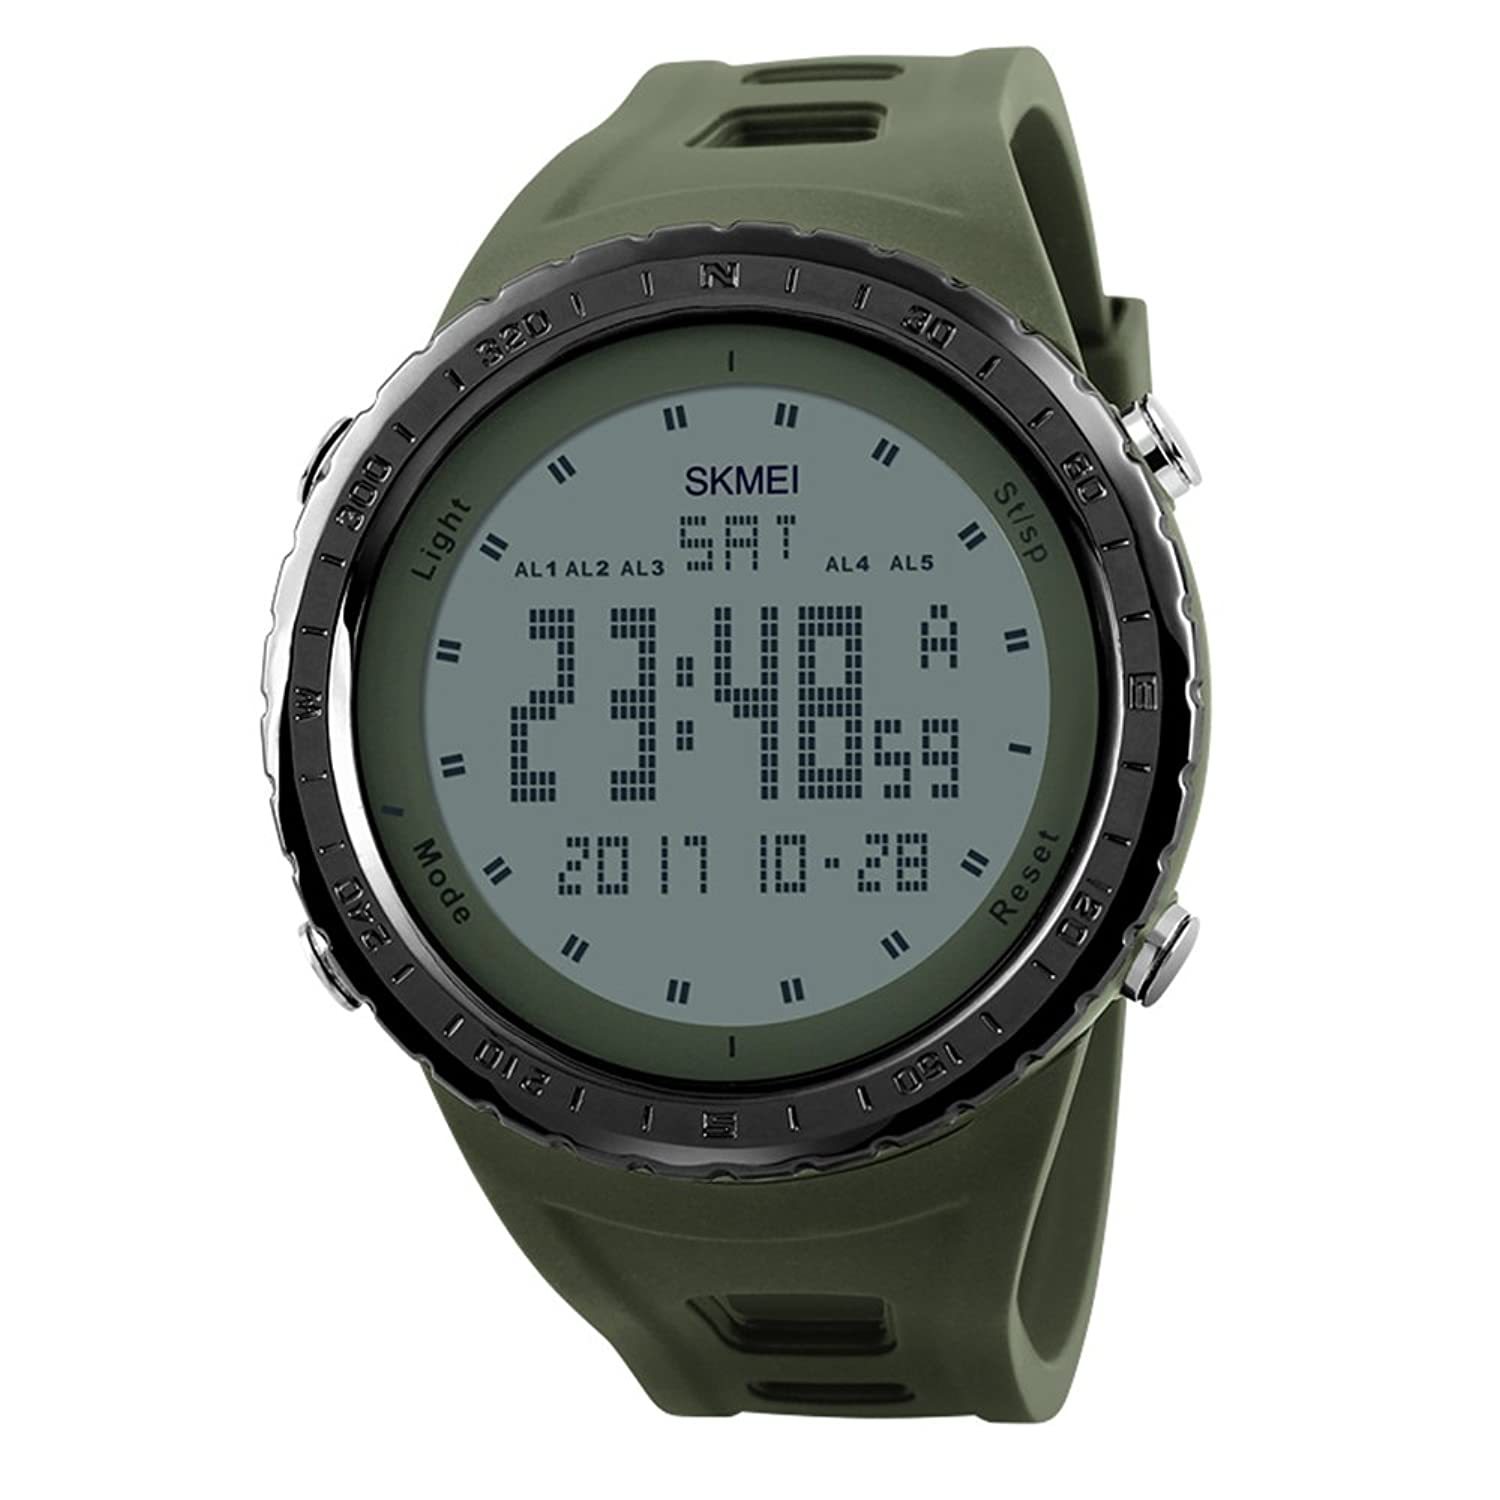 Amazon.com: Mens Big Dual Dial Watches Digital Military Sport Police WristWatch for Men Green: Watches